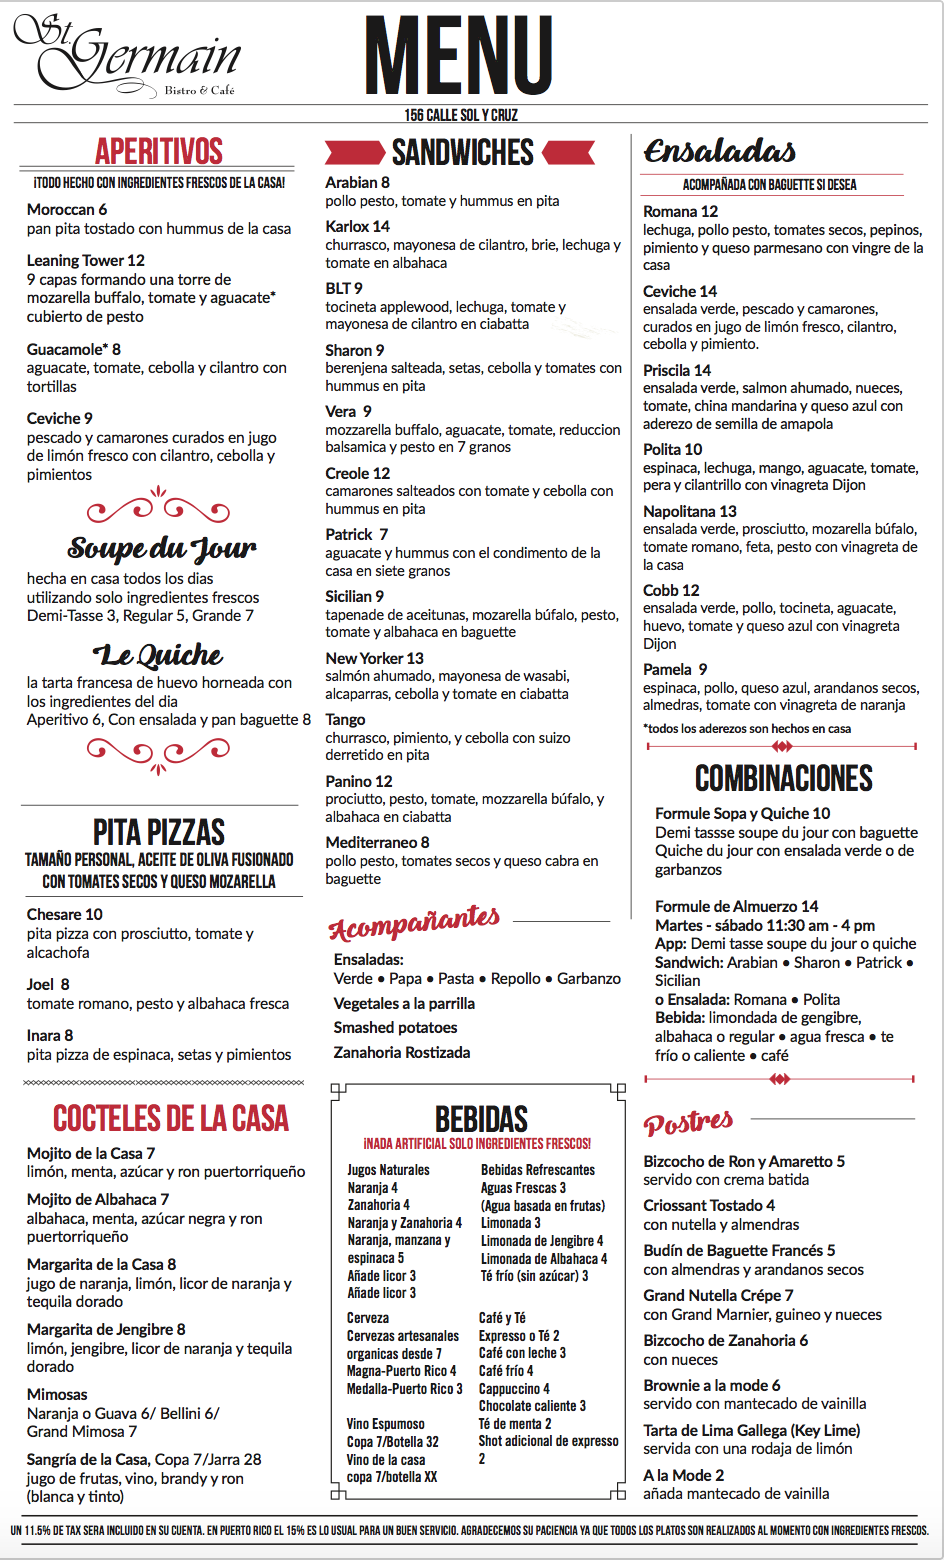 Menu St Germain 2017